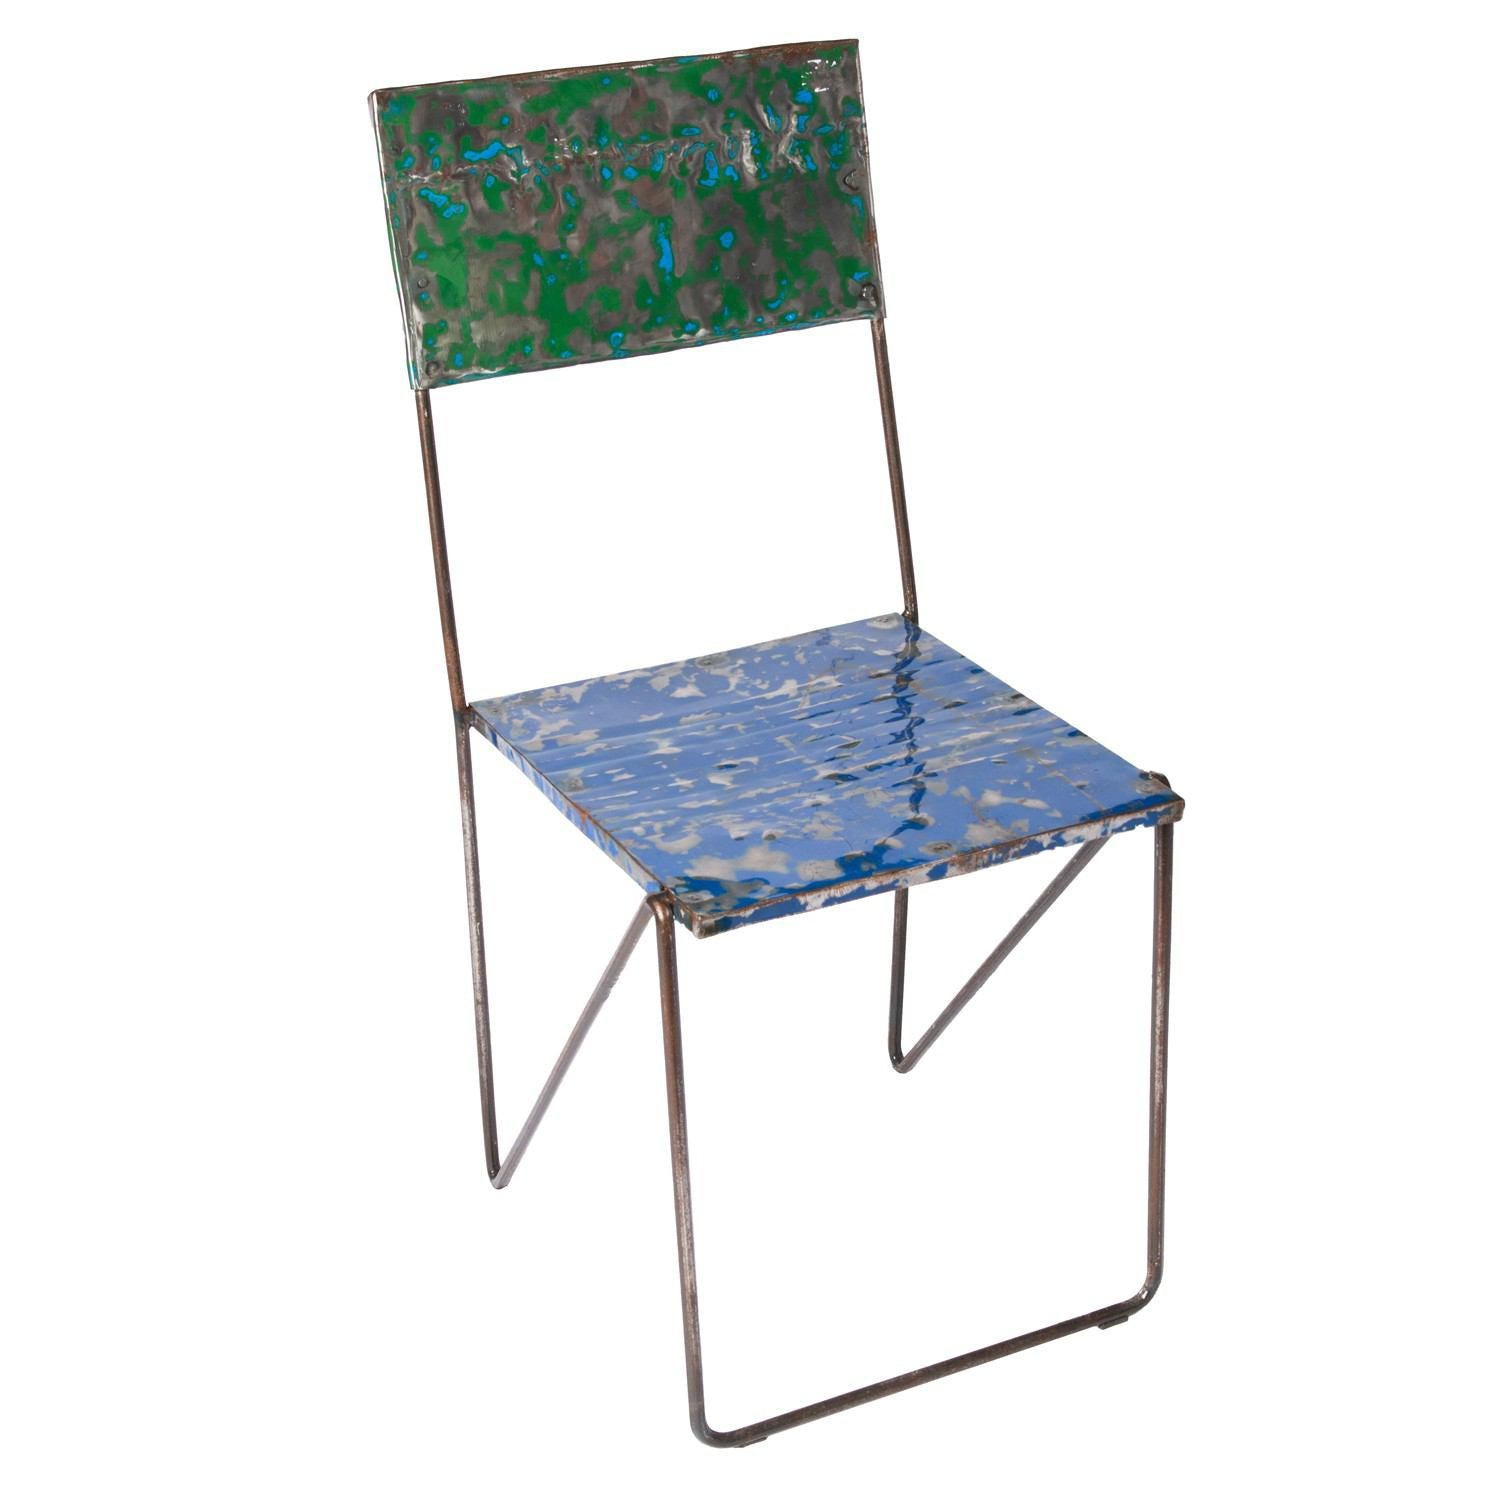 Metal Recycled Oil Drum Dining Chair R-1090 by AIRE Furniture